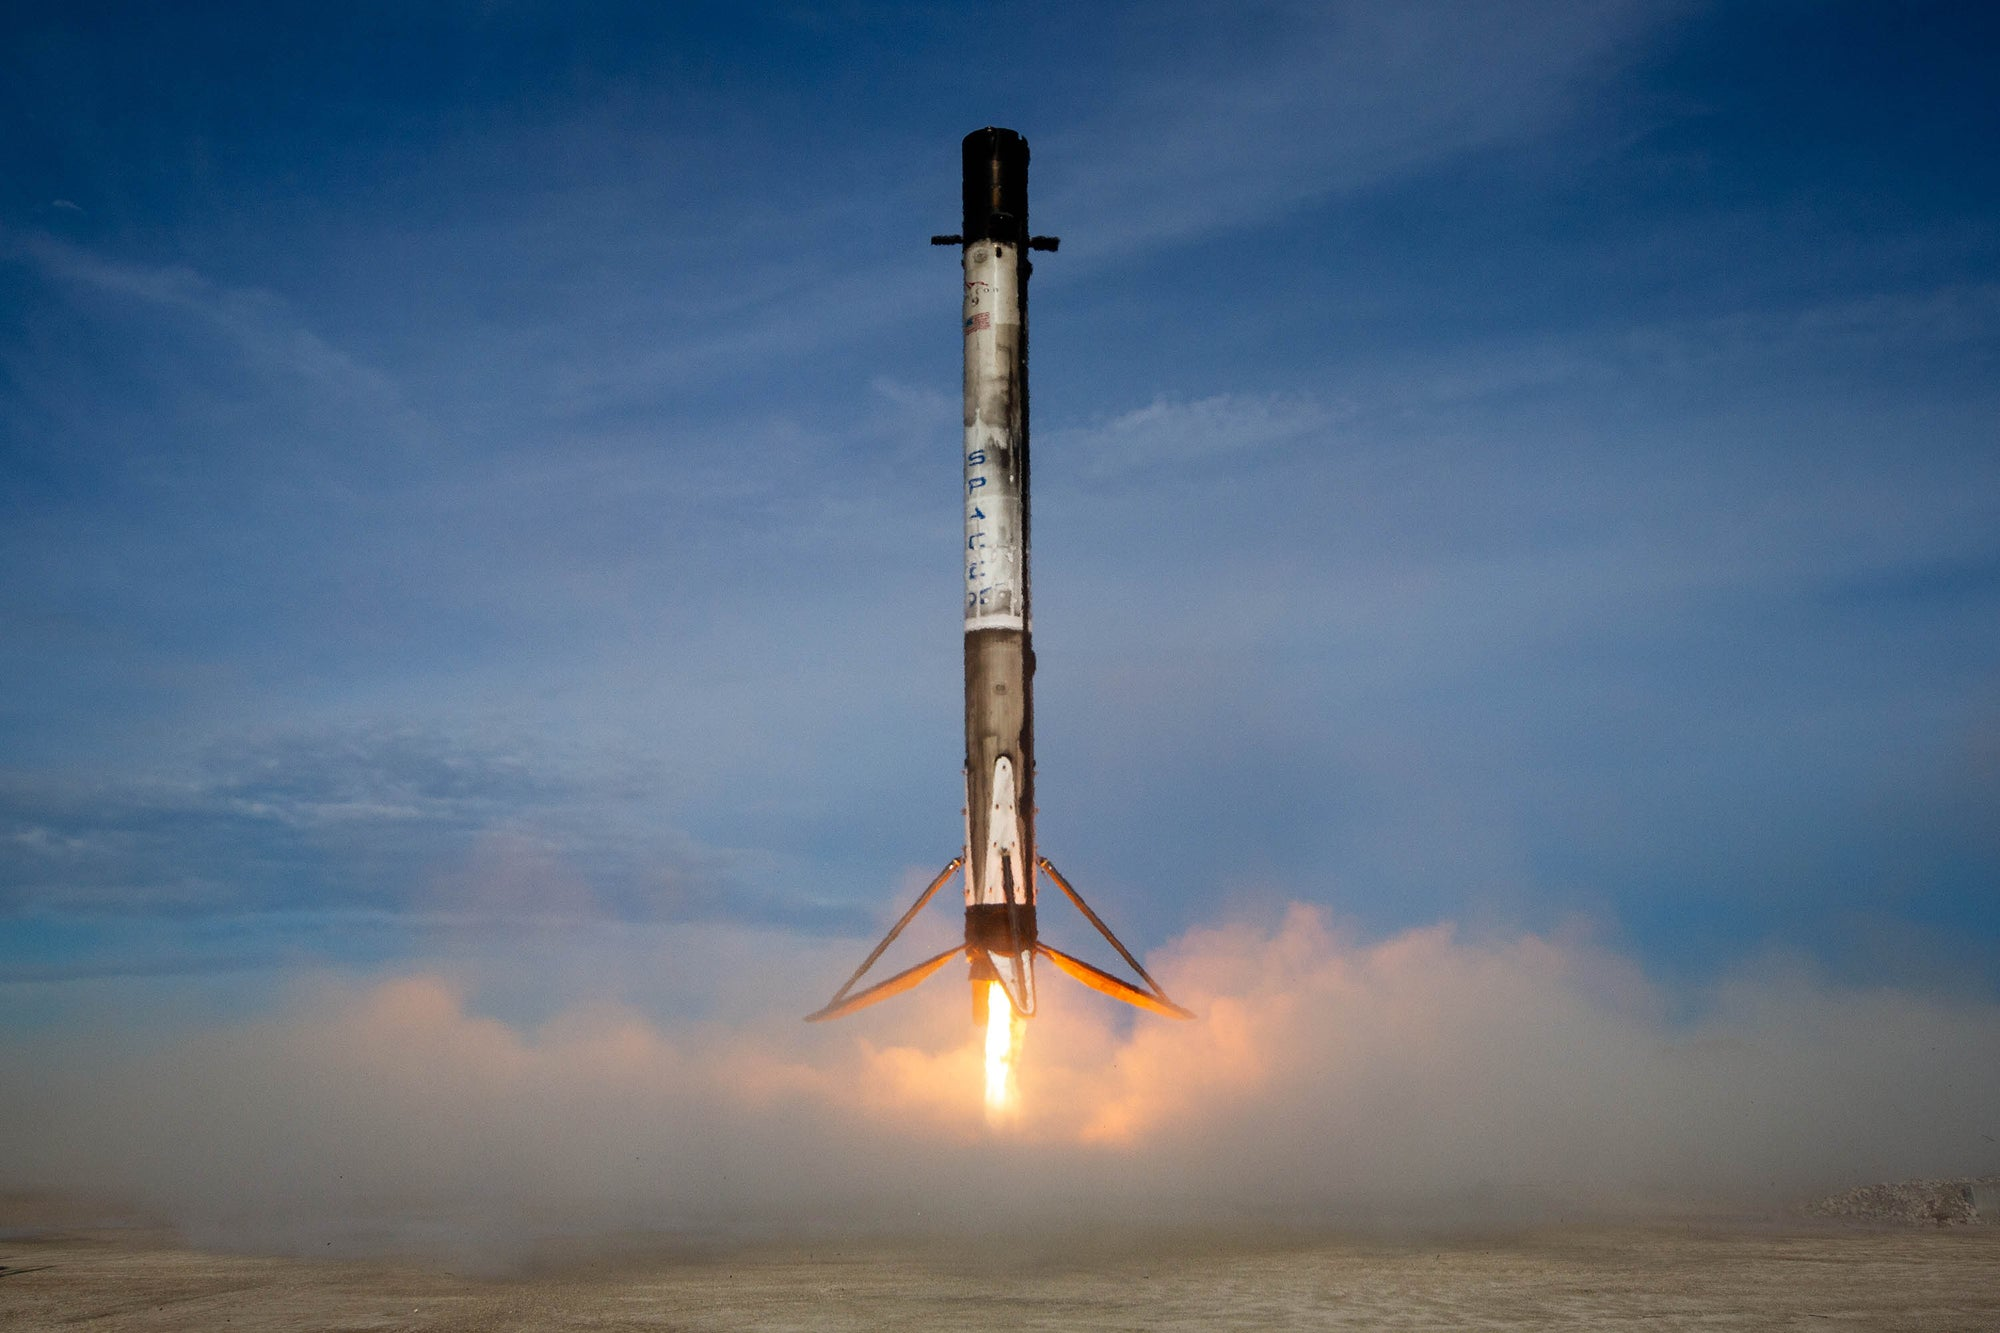 SpaceX is scheduled to deploy Starlink satellites on Sunday and will attempt a 50th Falcon 9 rocket landing! [Update: Rescheduled to Monday]